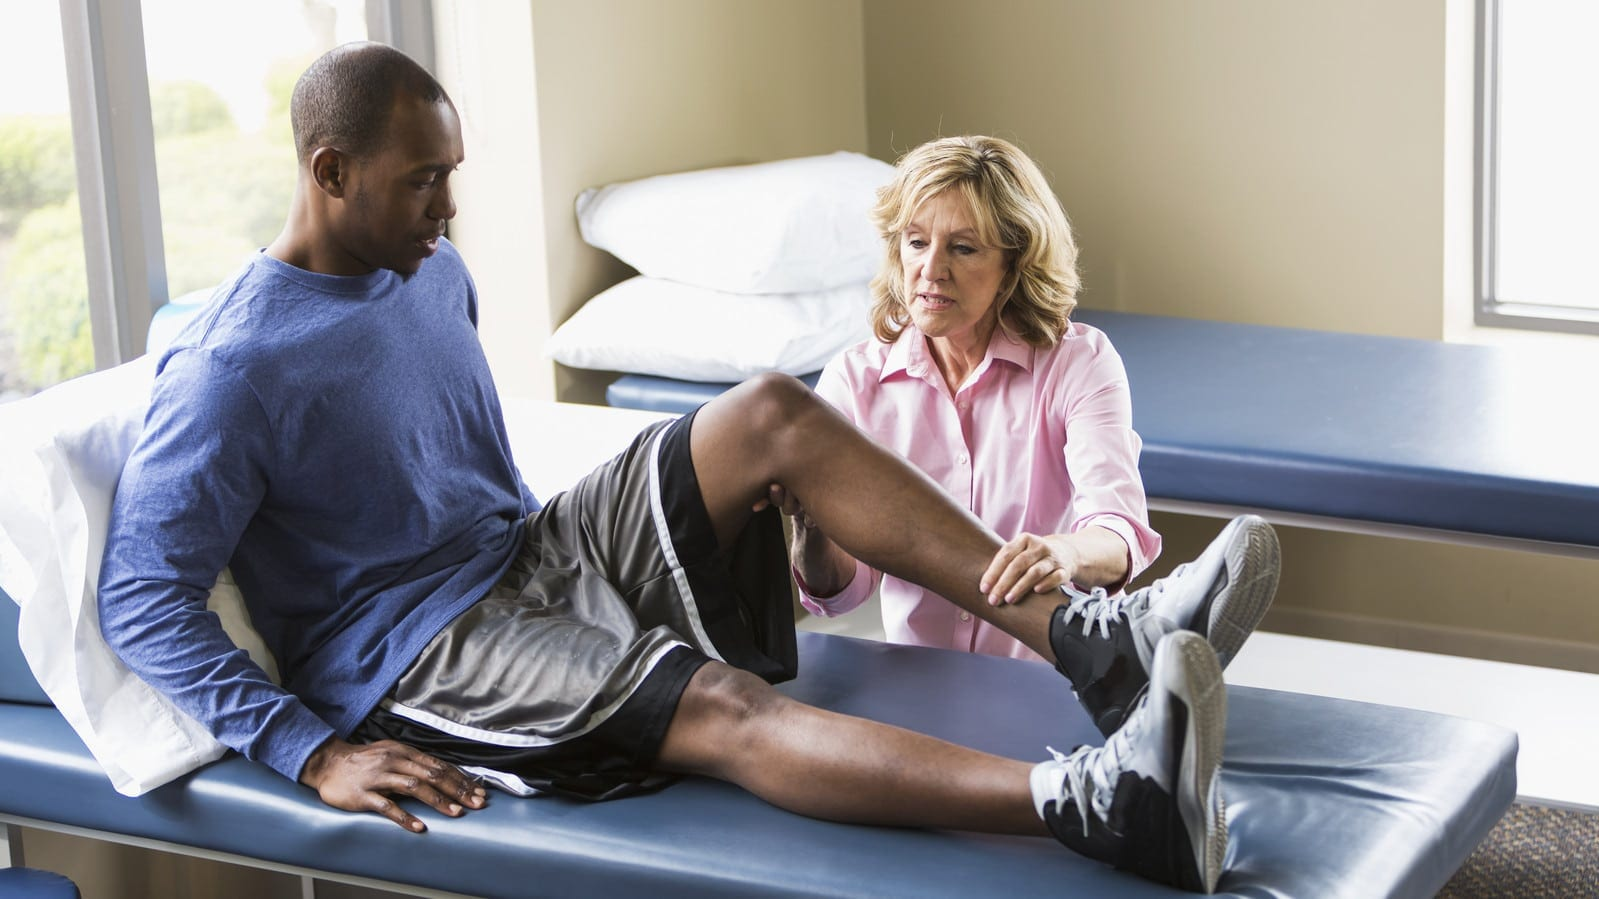 Female Physical Therapist Working With Male Patient Stock Photo